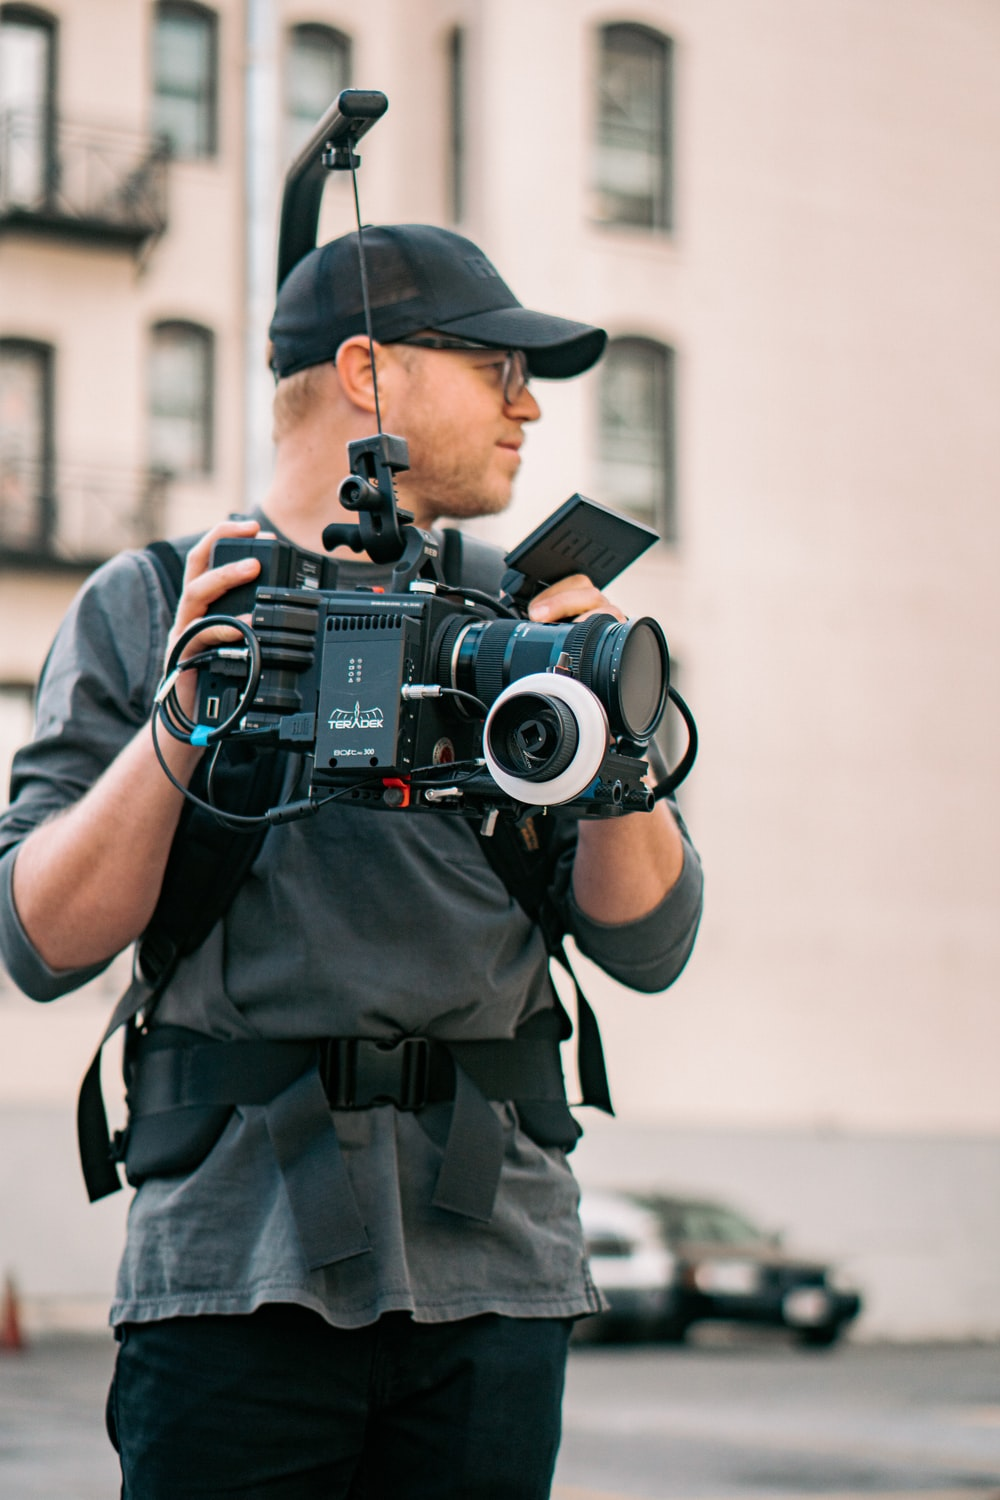 man in black and gray camouflage uniform holding black dslr camera